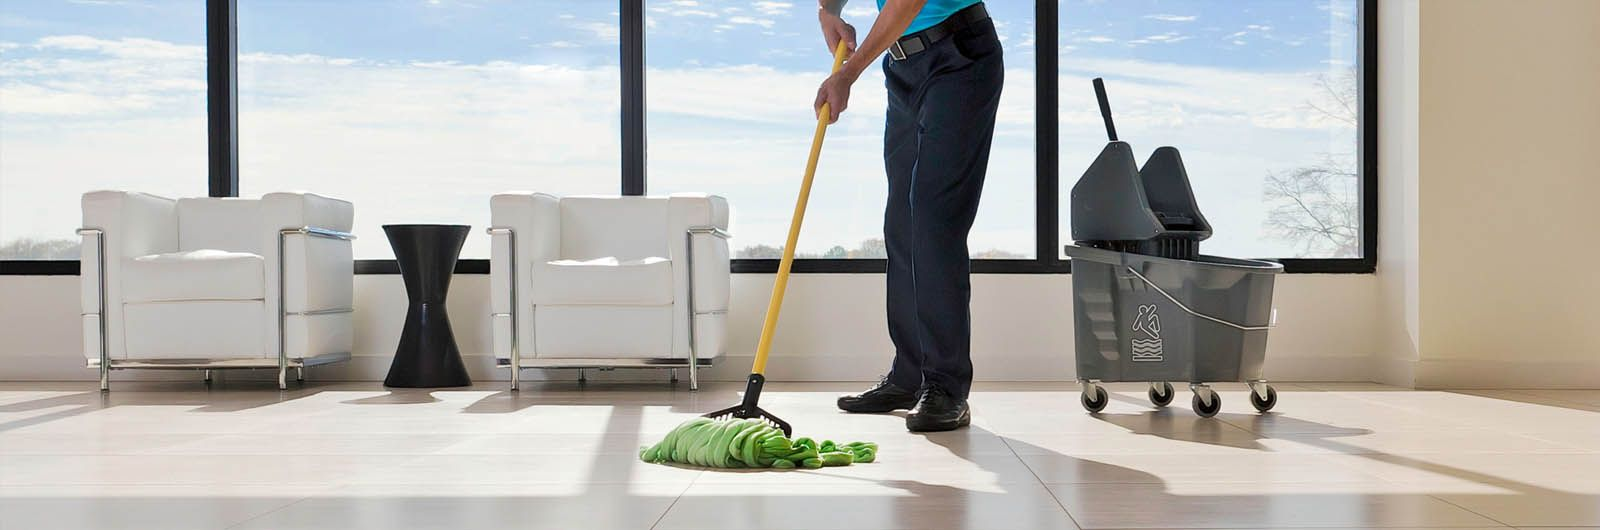 Housekeeping services in bhandup house cleaning services